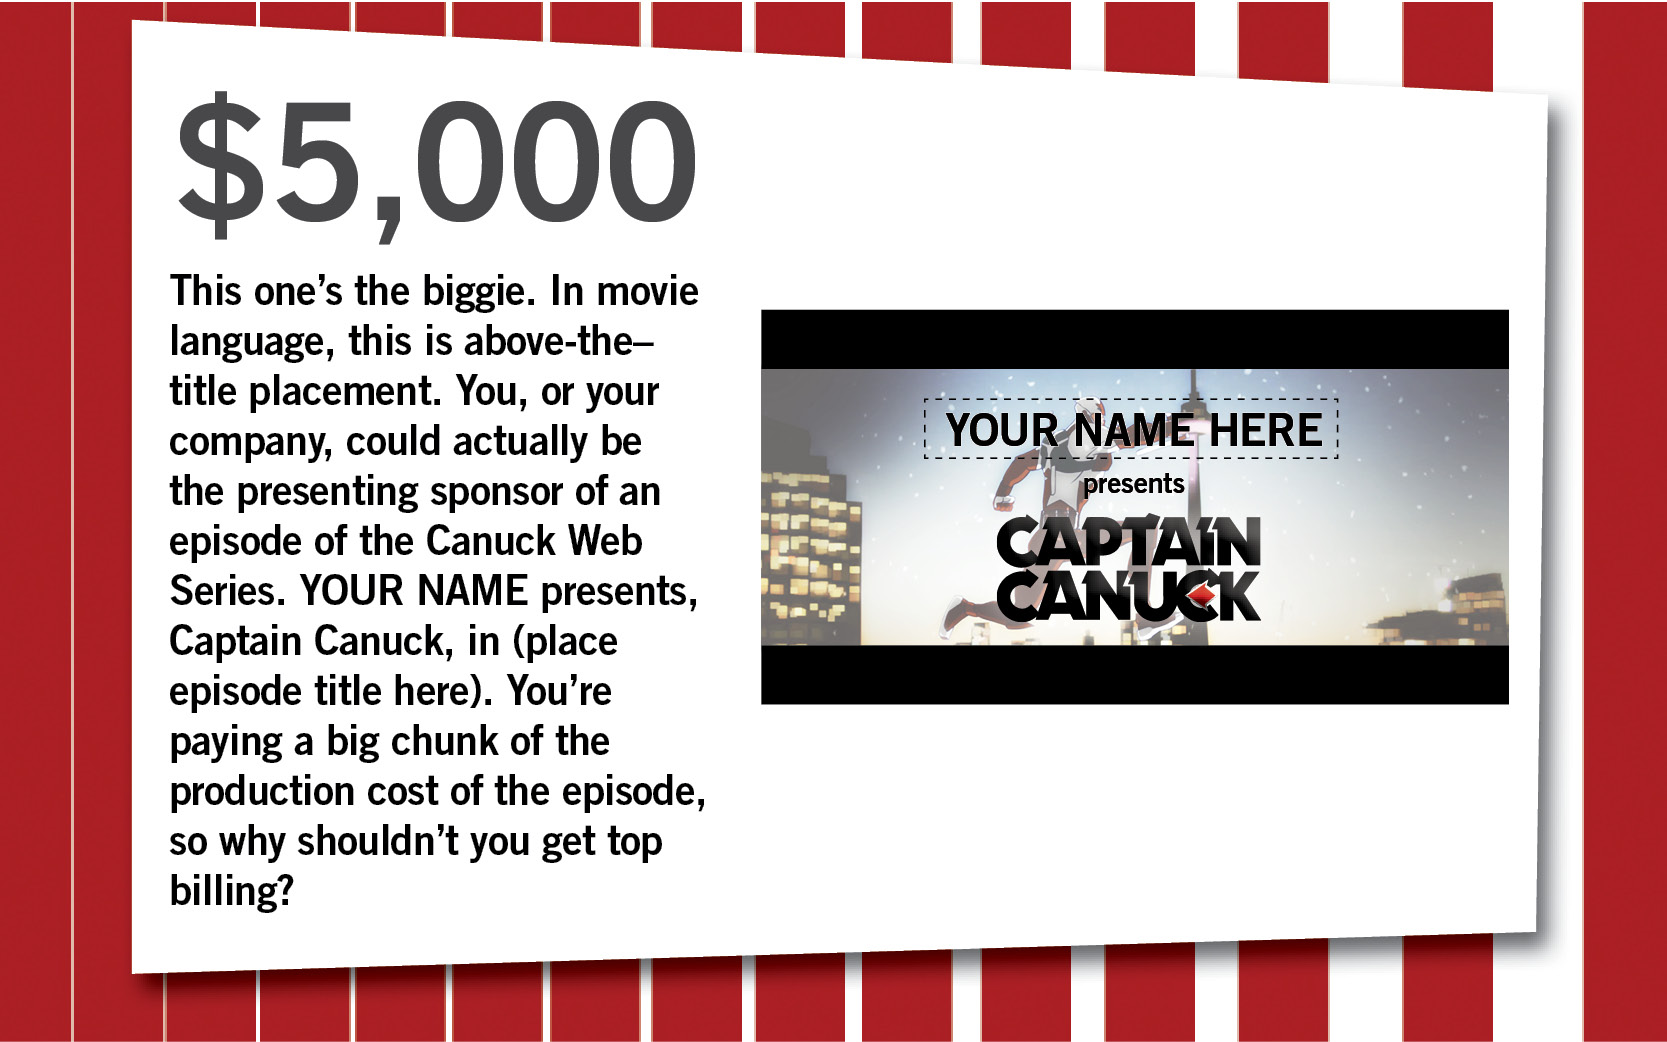 This one's the biggie. In movie language, this is above-the–title placement. You, or your company, could actually be the presenting sponsor of an episode of the Canuck Web Series. YOUR NAME presents, Captain Canuck, in (place episode title here). You're paying a big chunk of the production cost of the episode, so why shouldn't you get top billing?